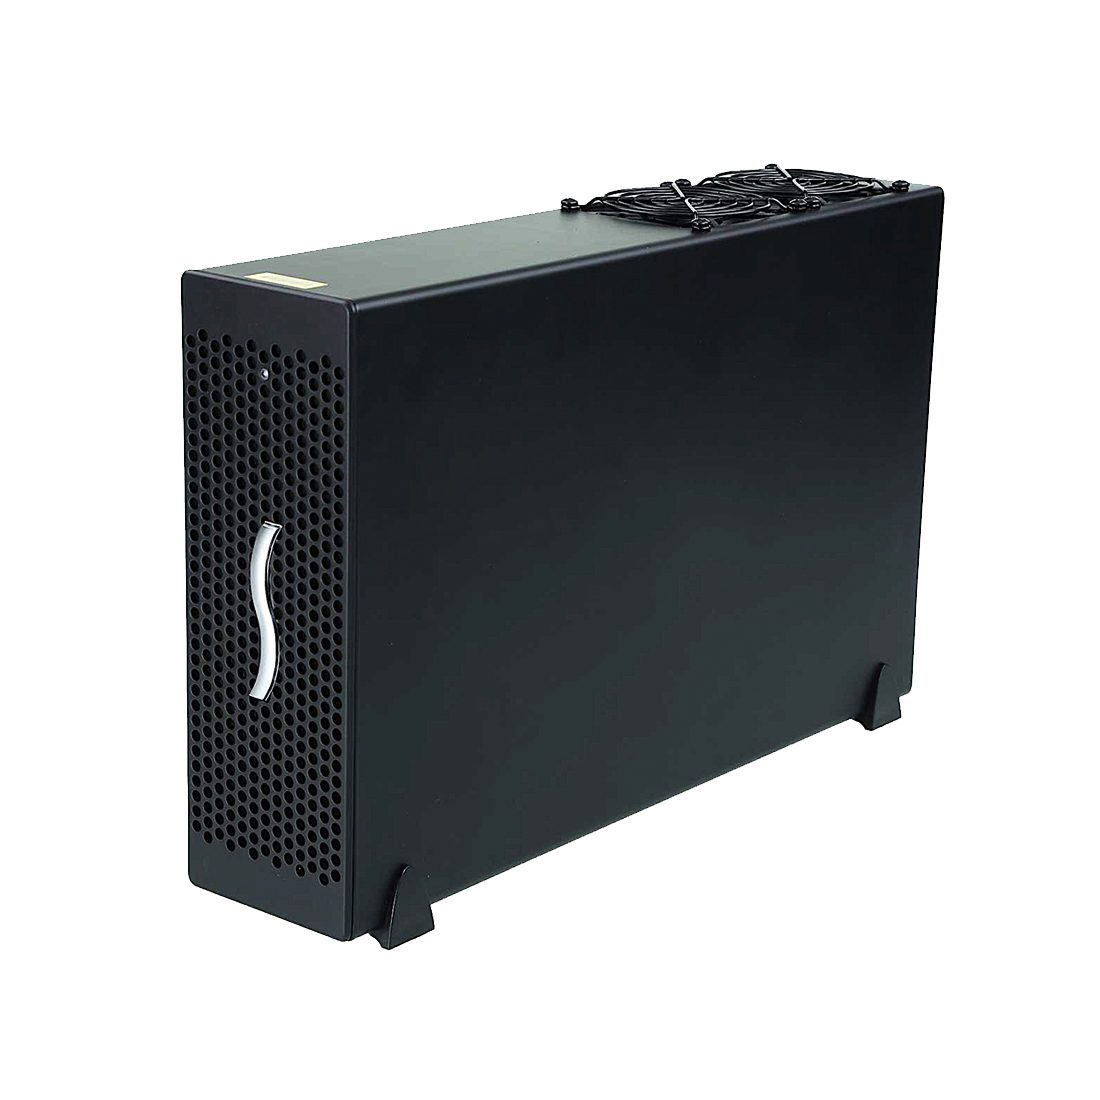 Sonnet Echo Express III-D Thunderbolt 2 Enclosure